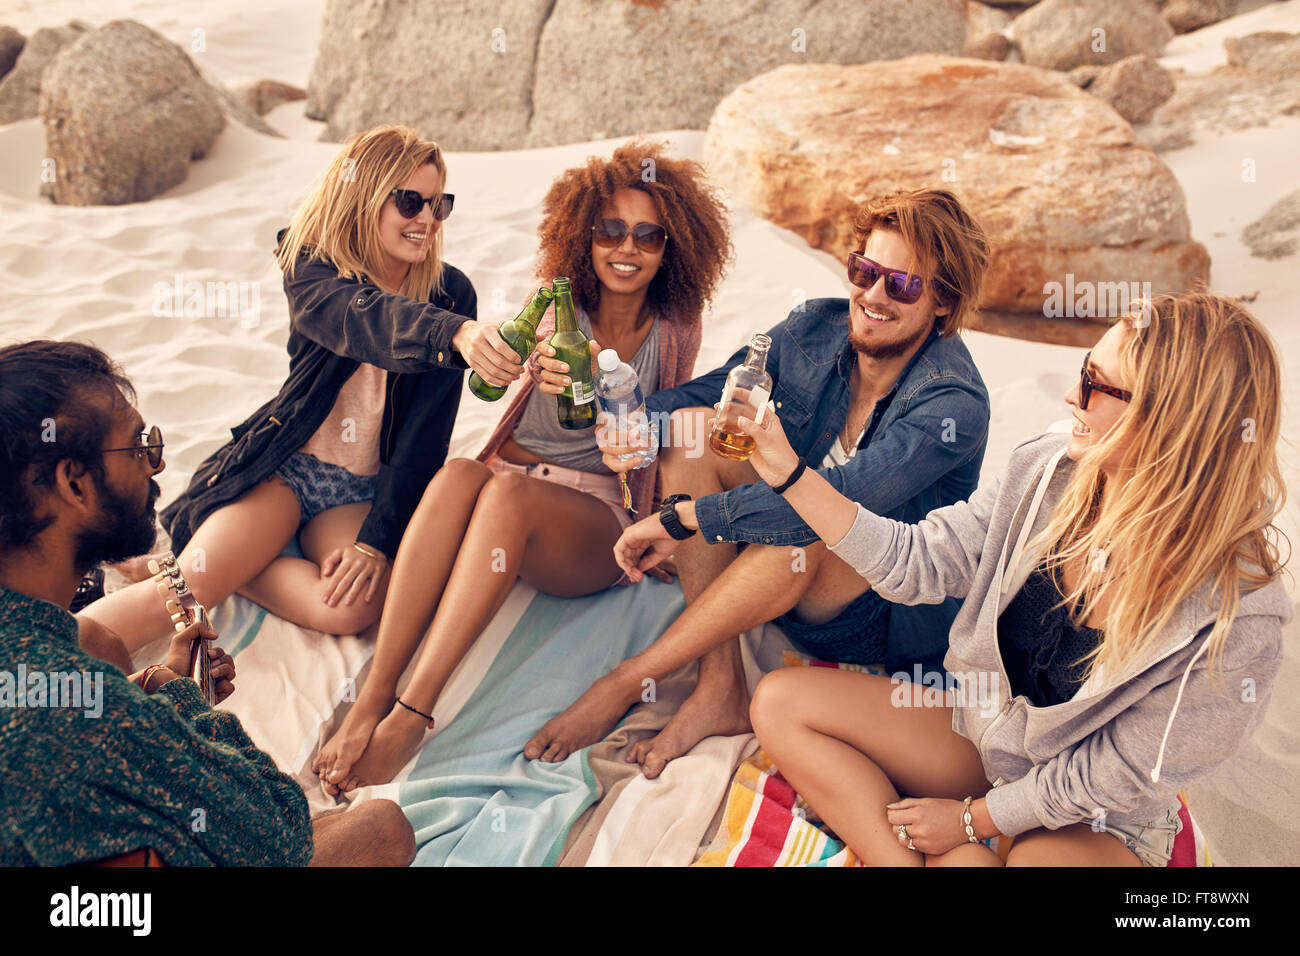 Group of young people toasting beers while sitting at the beach. Mixed race friends celebrating with drinks at beach - Stock Image